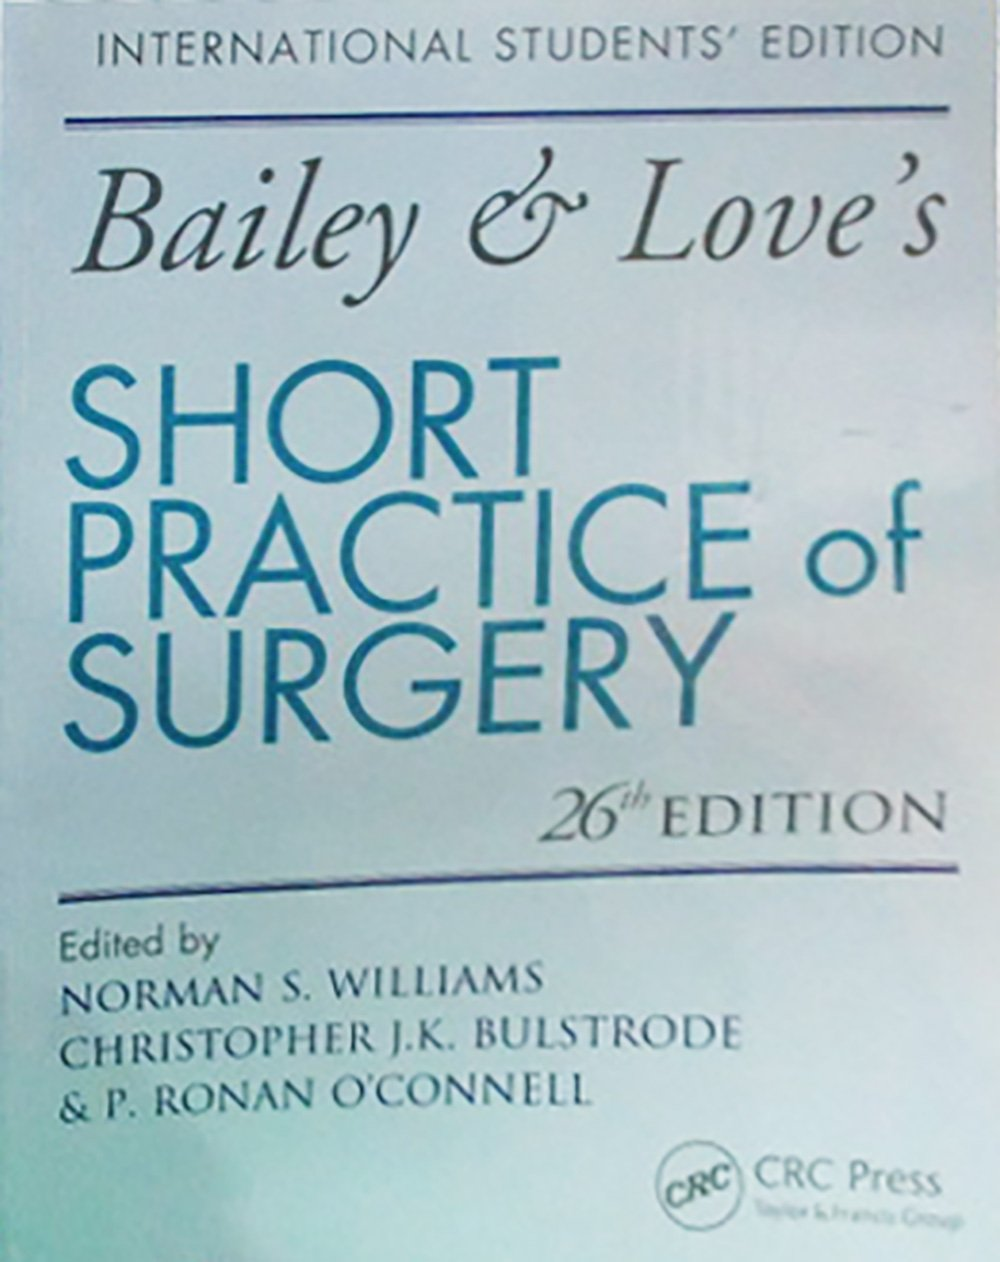 Bailey And Love 25th Edition Pdf